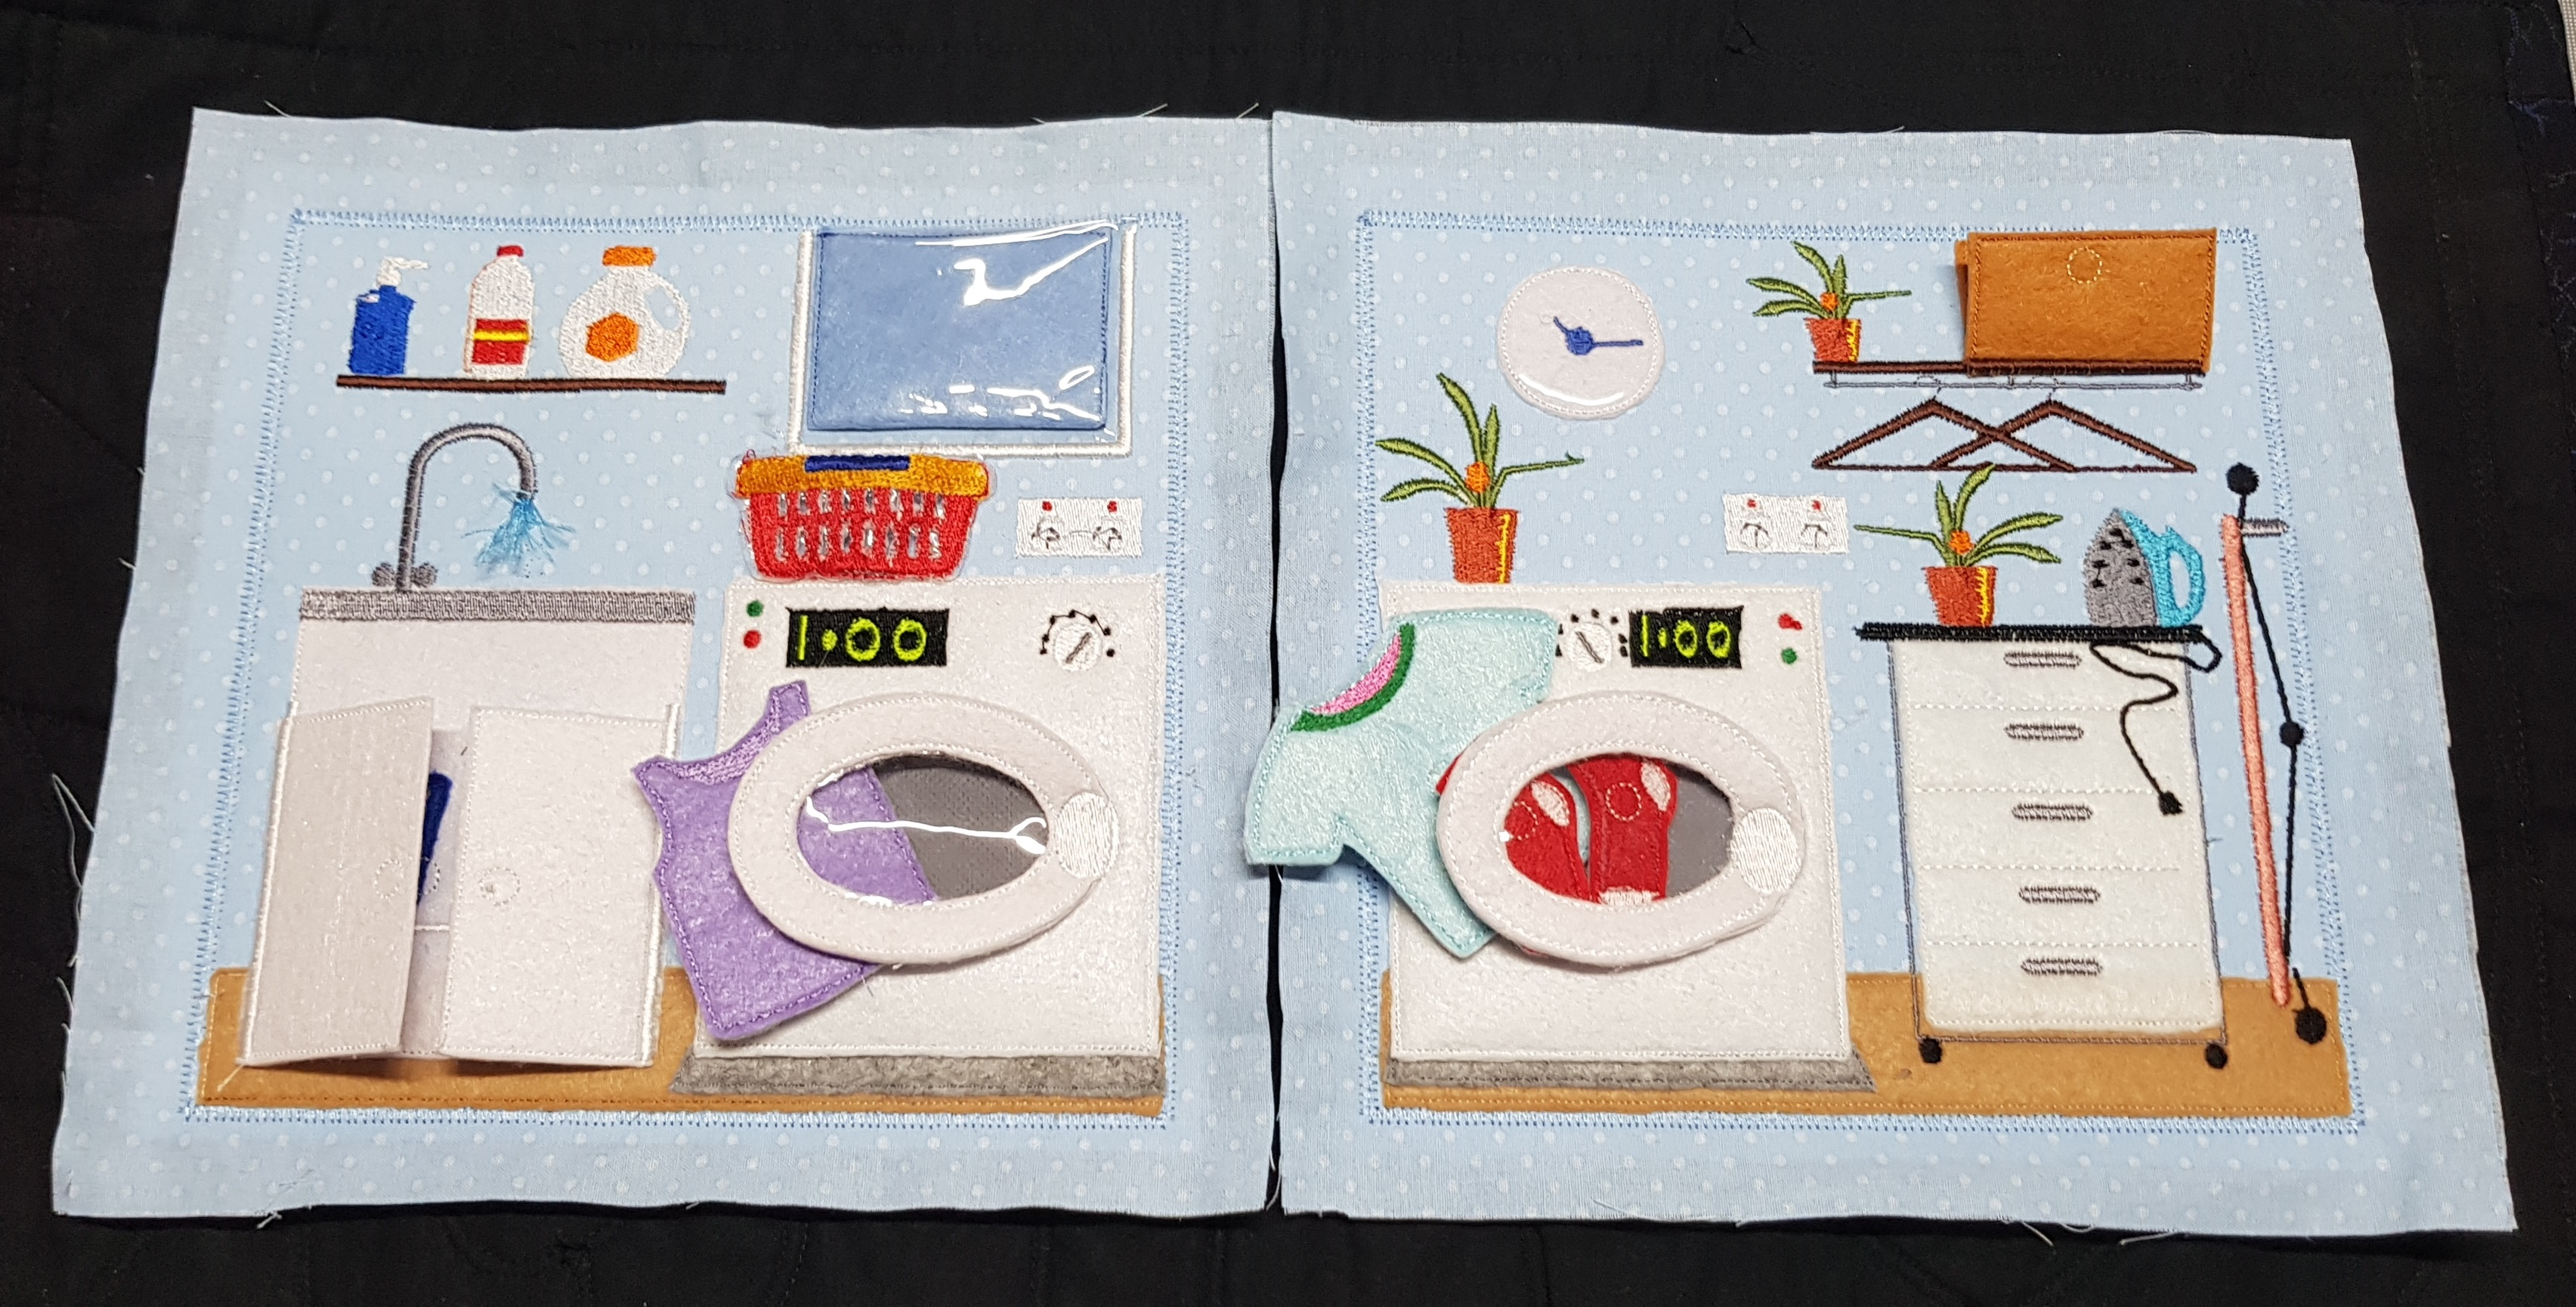 Laundry room 8x8 quiet book pages - ITHWL